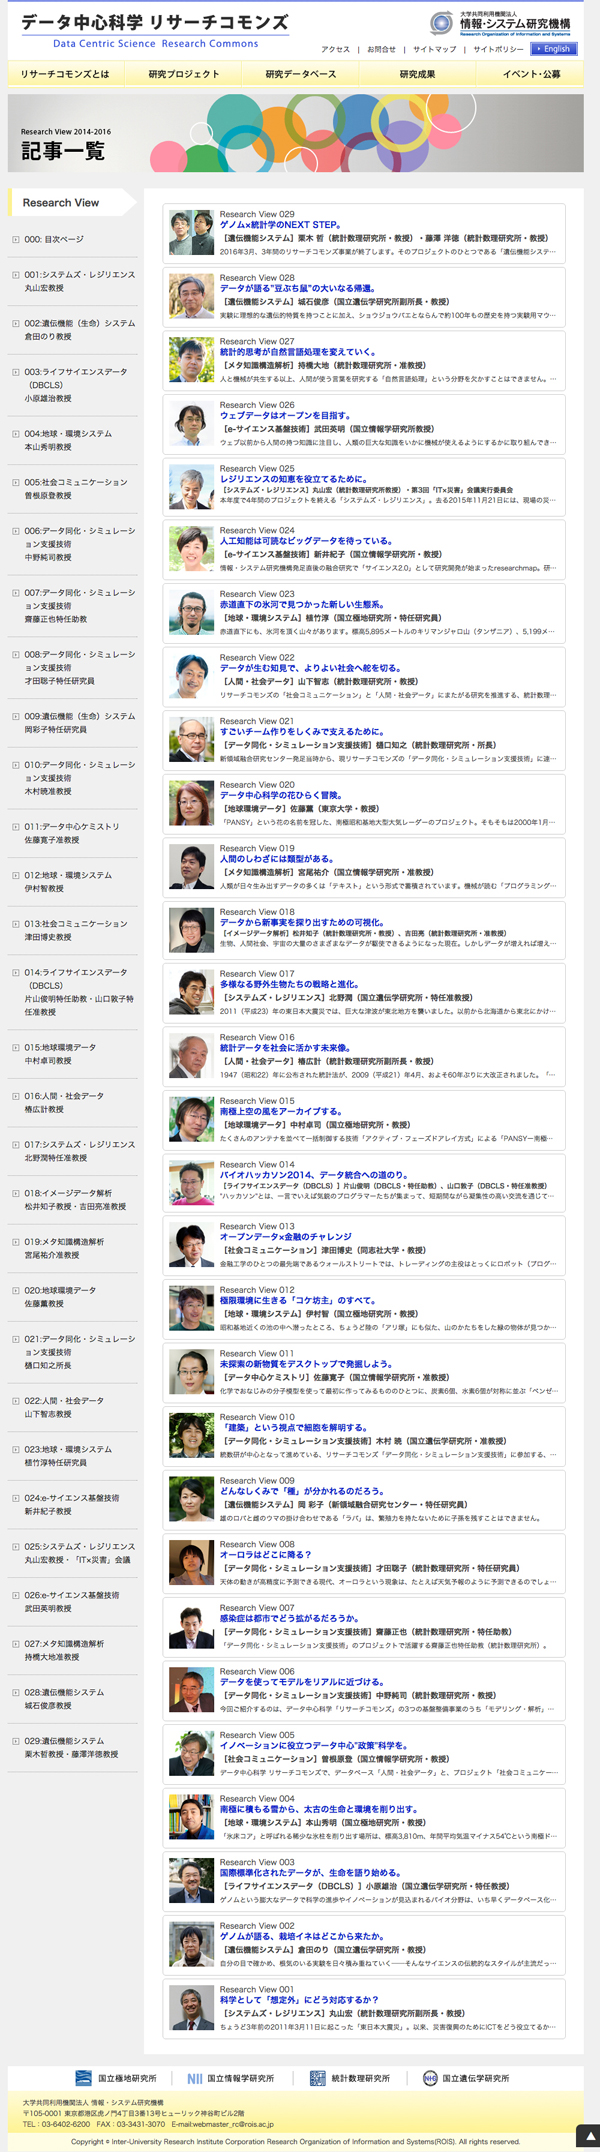 リサーチコモンズwebsite2014-6 Research View list